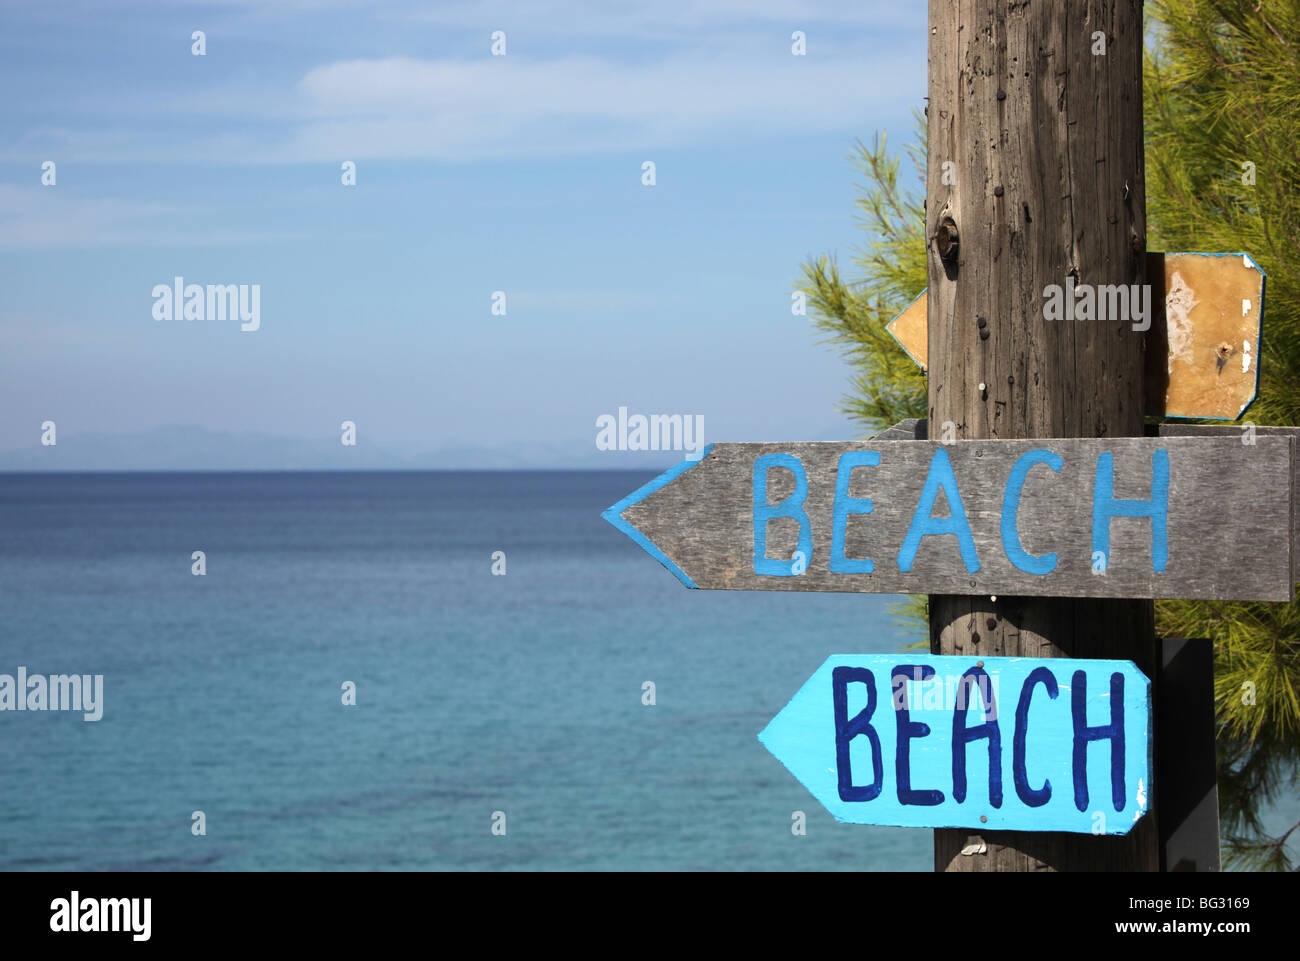 Two hand painted wooden signs pointing to the beach - Stock Image